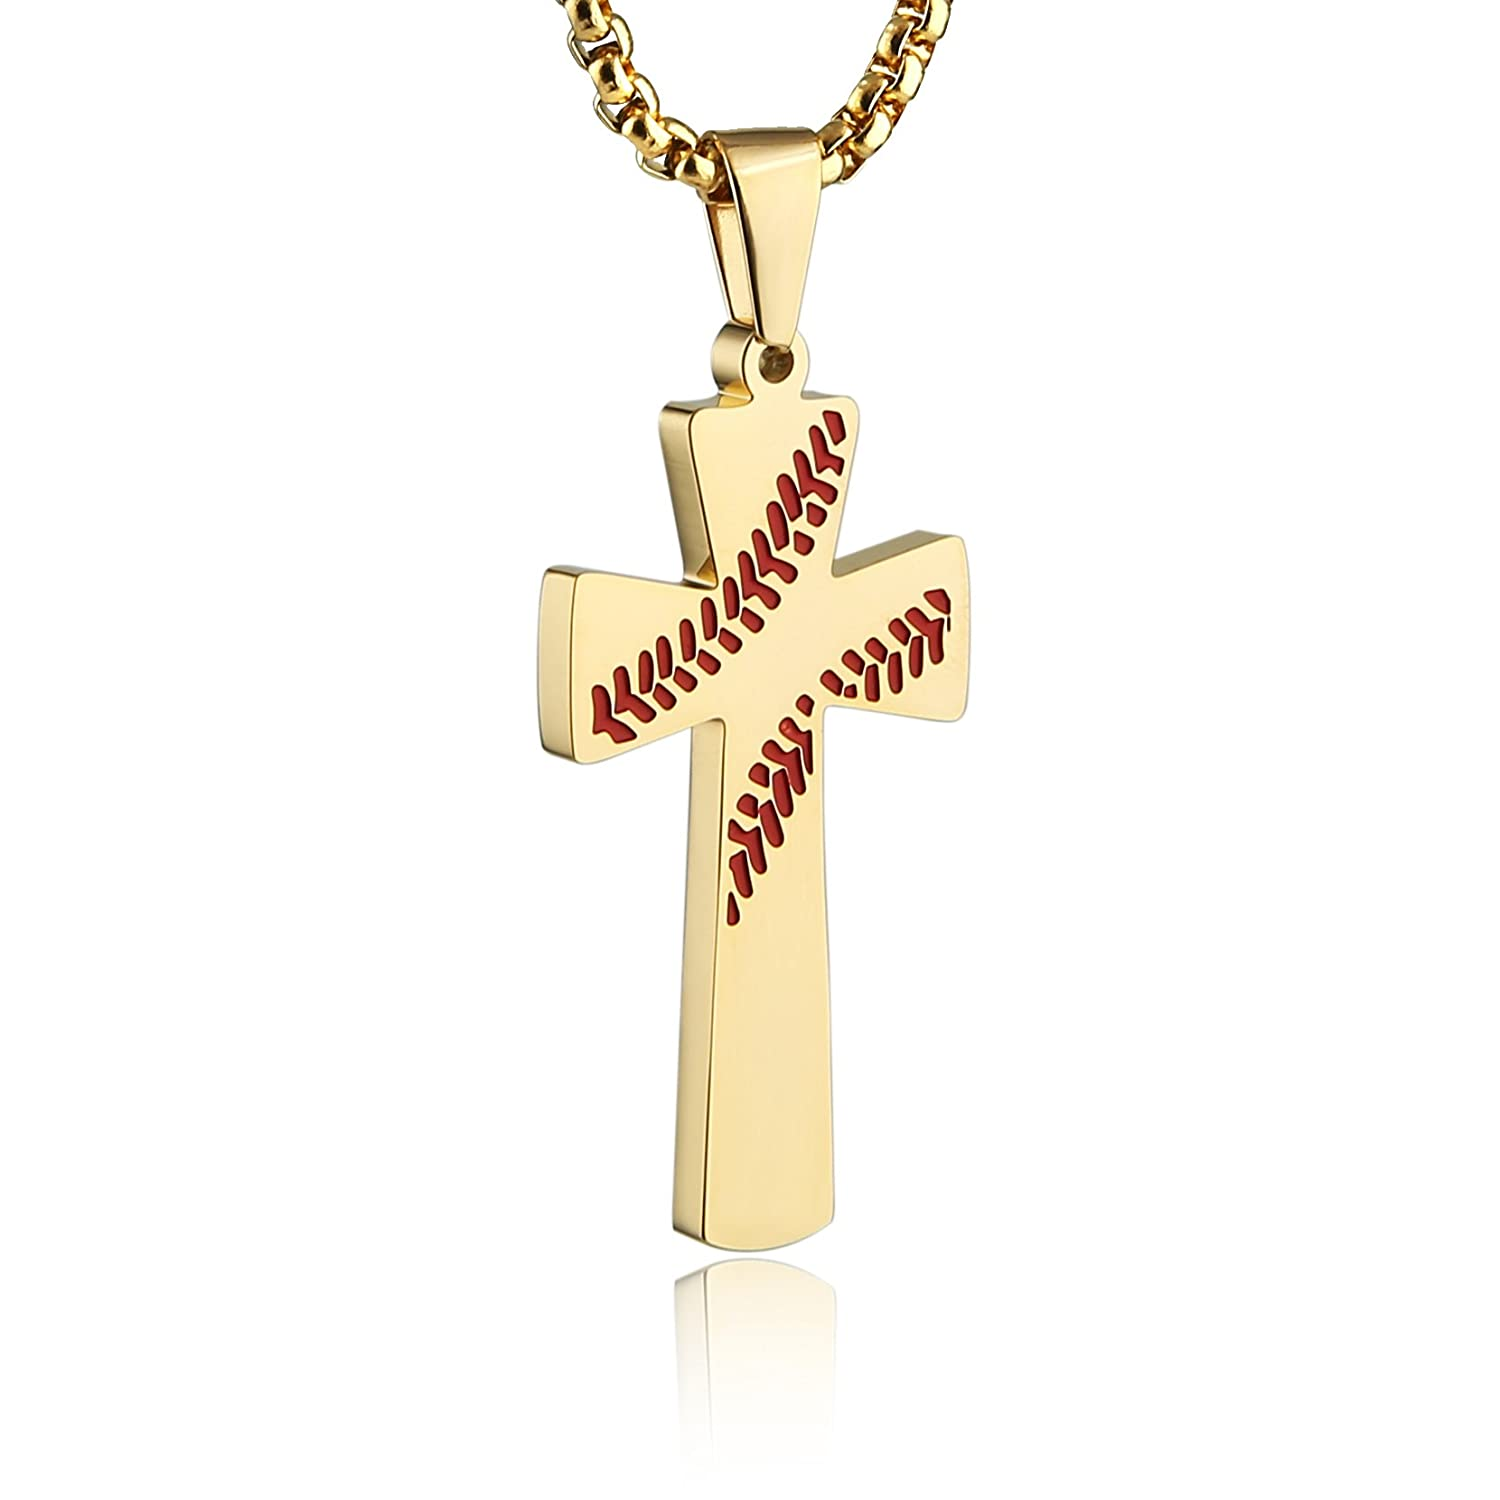 HZMAN Baseball Cross Pendant, I CAN DO All Things Strength Bible Verse Stainless Steel Necklace 24